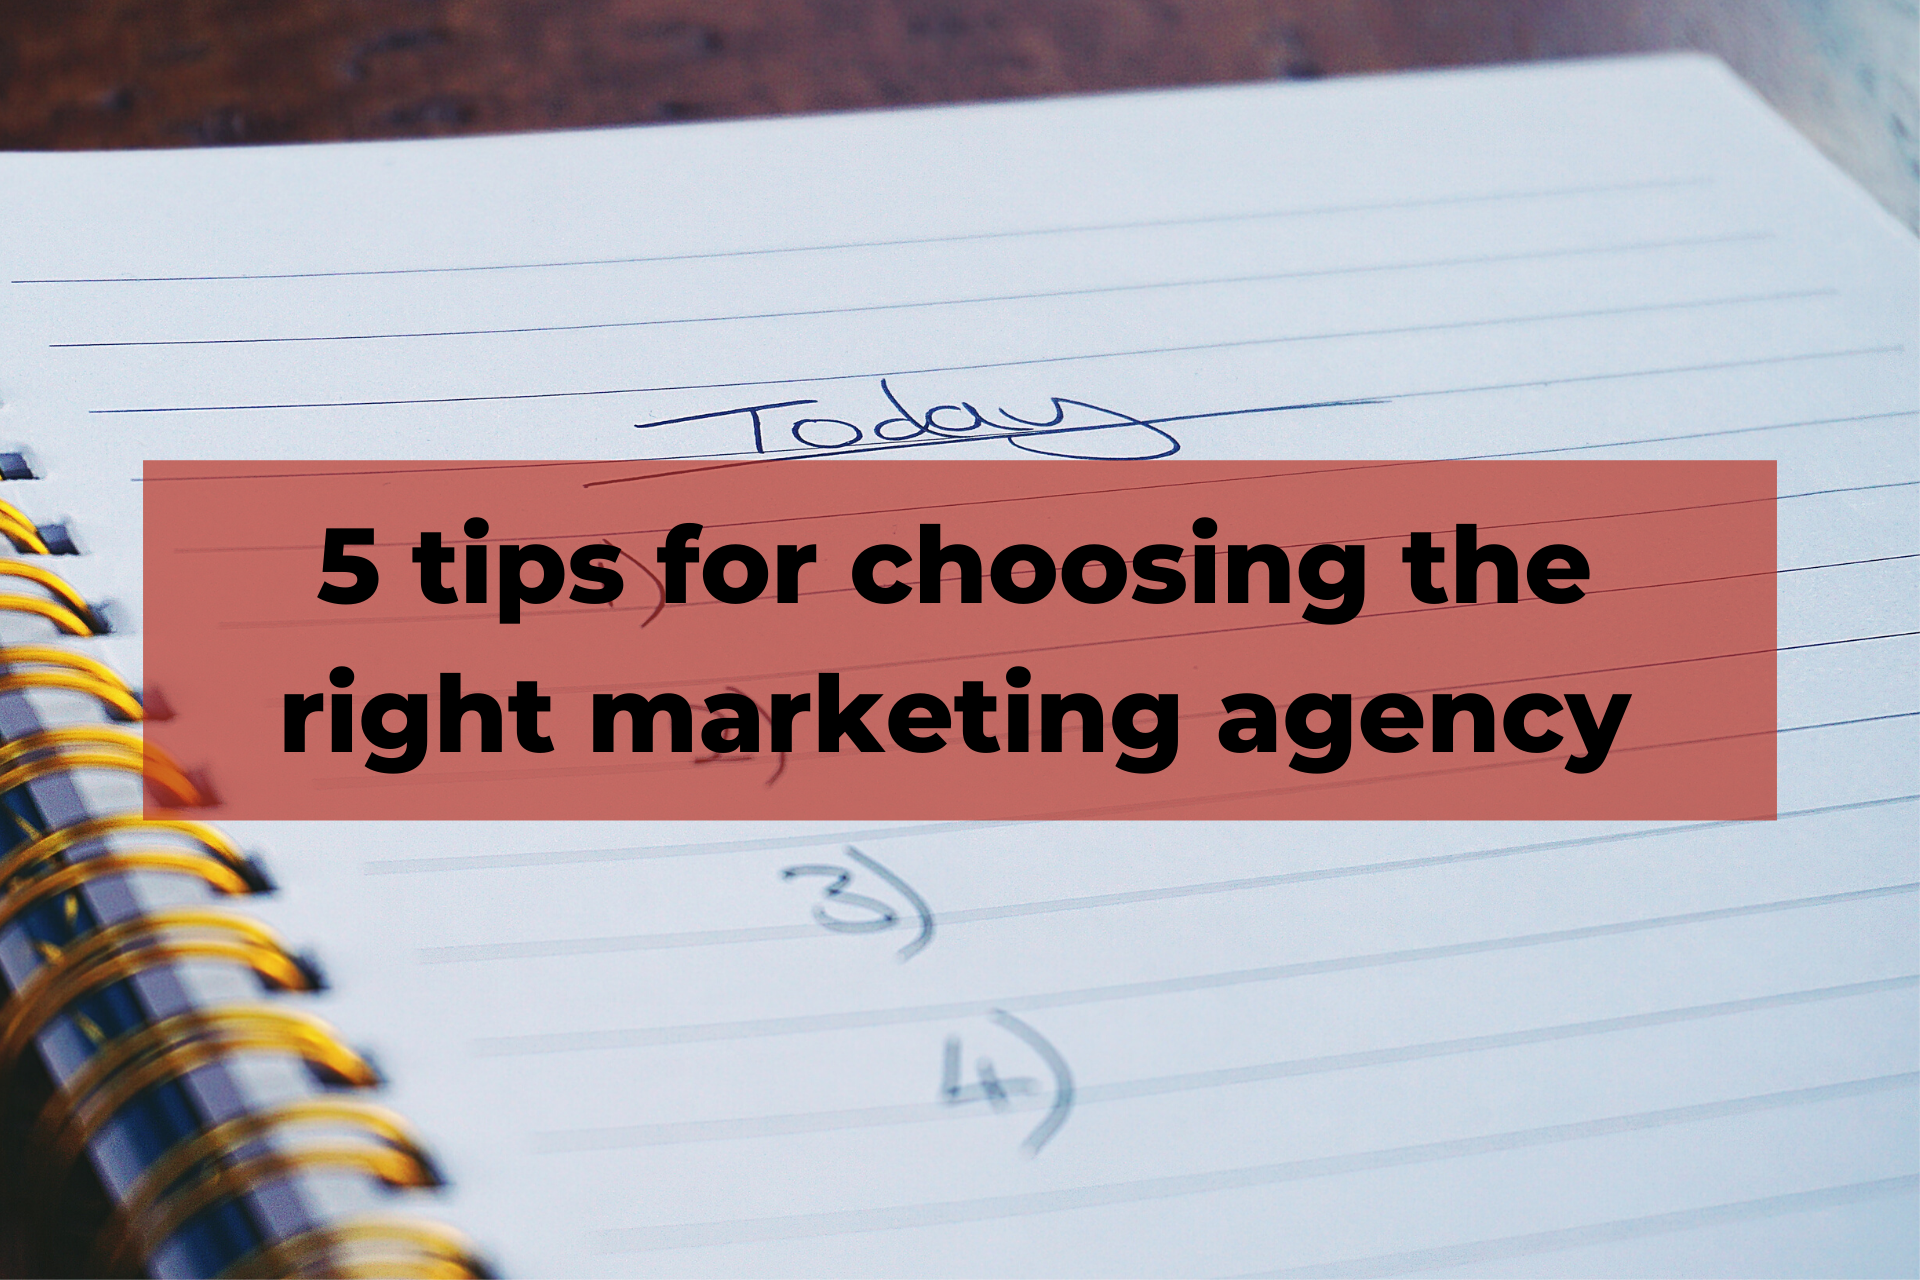 Choosing the right marketing agency